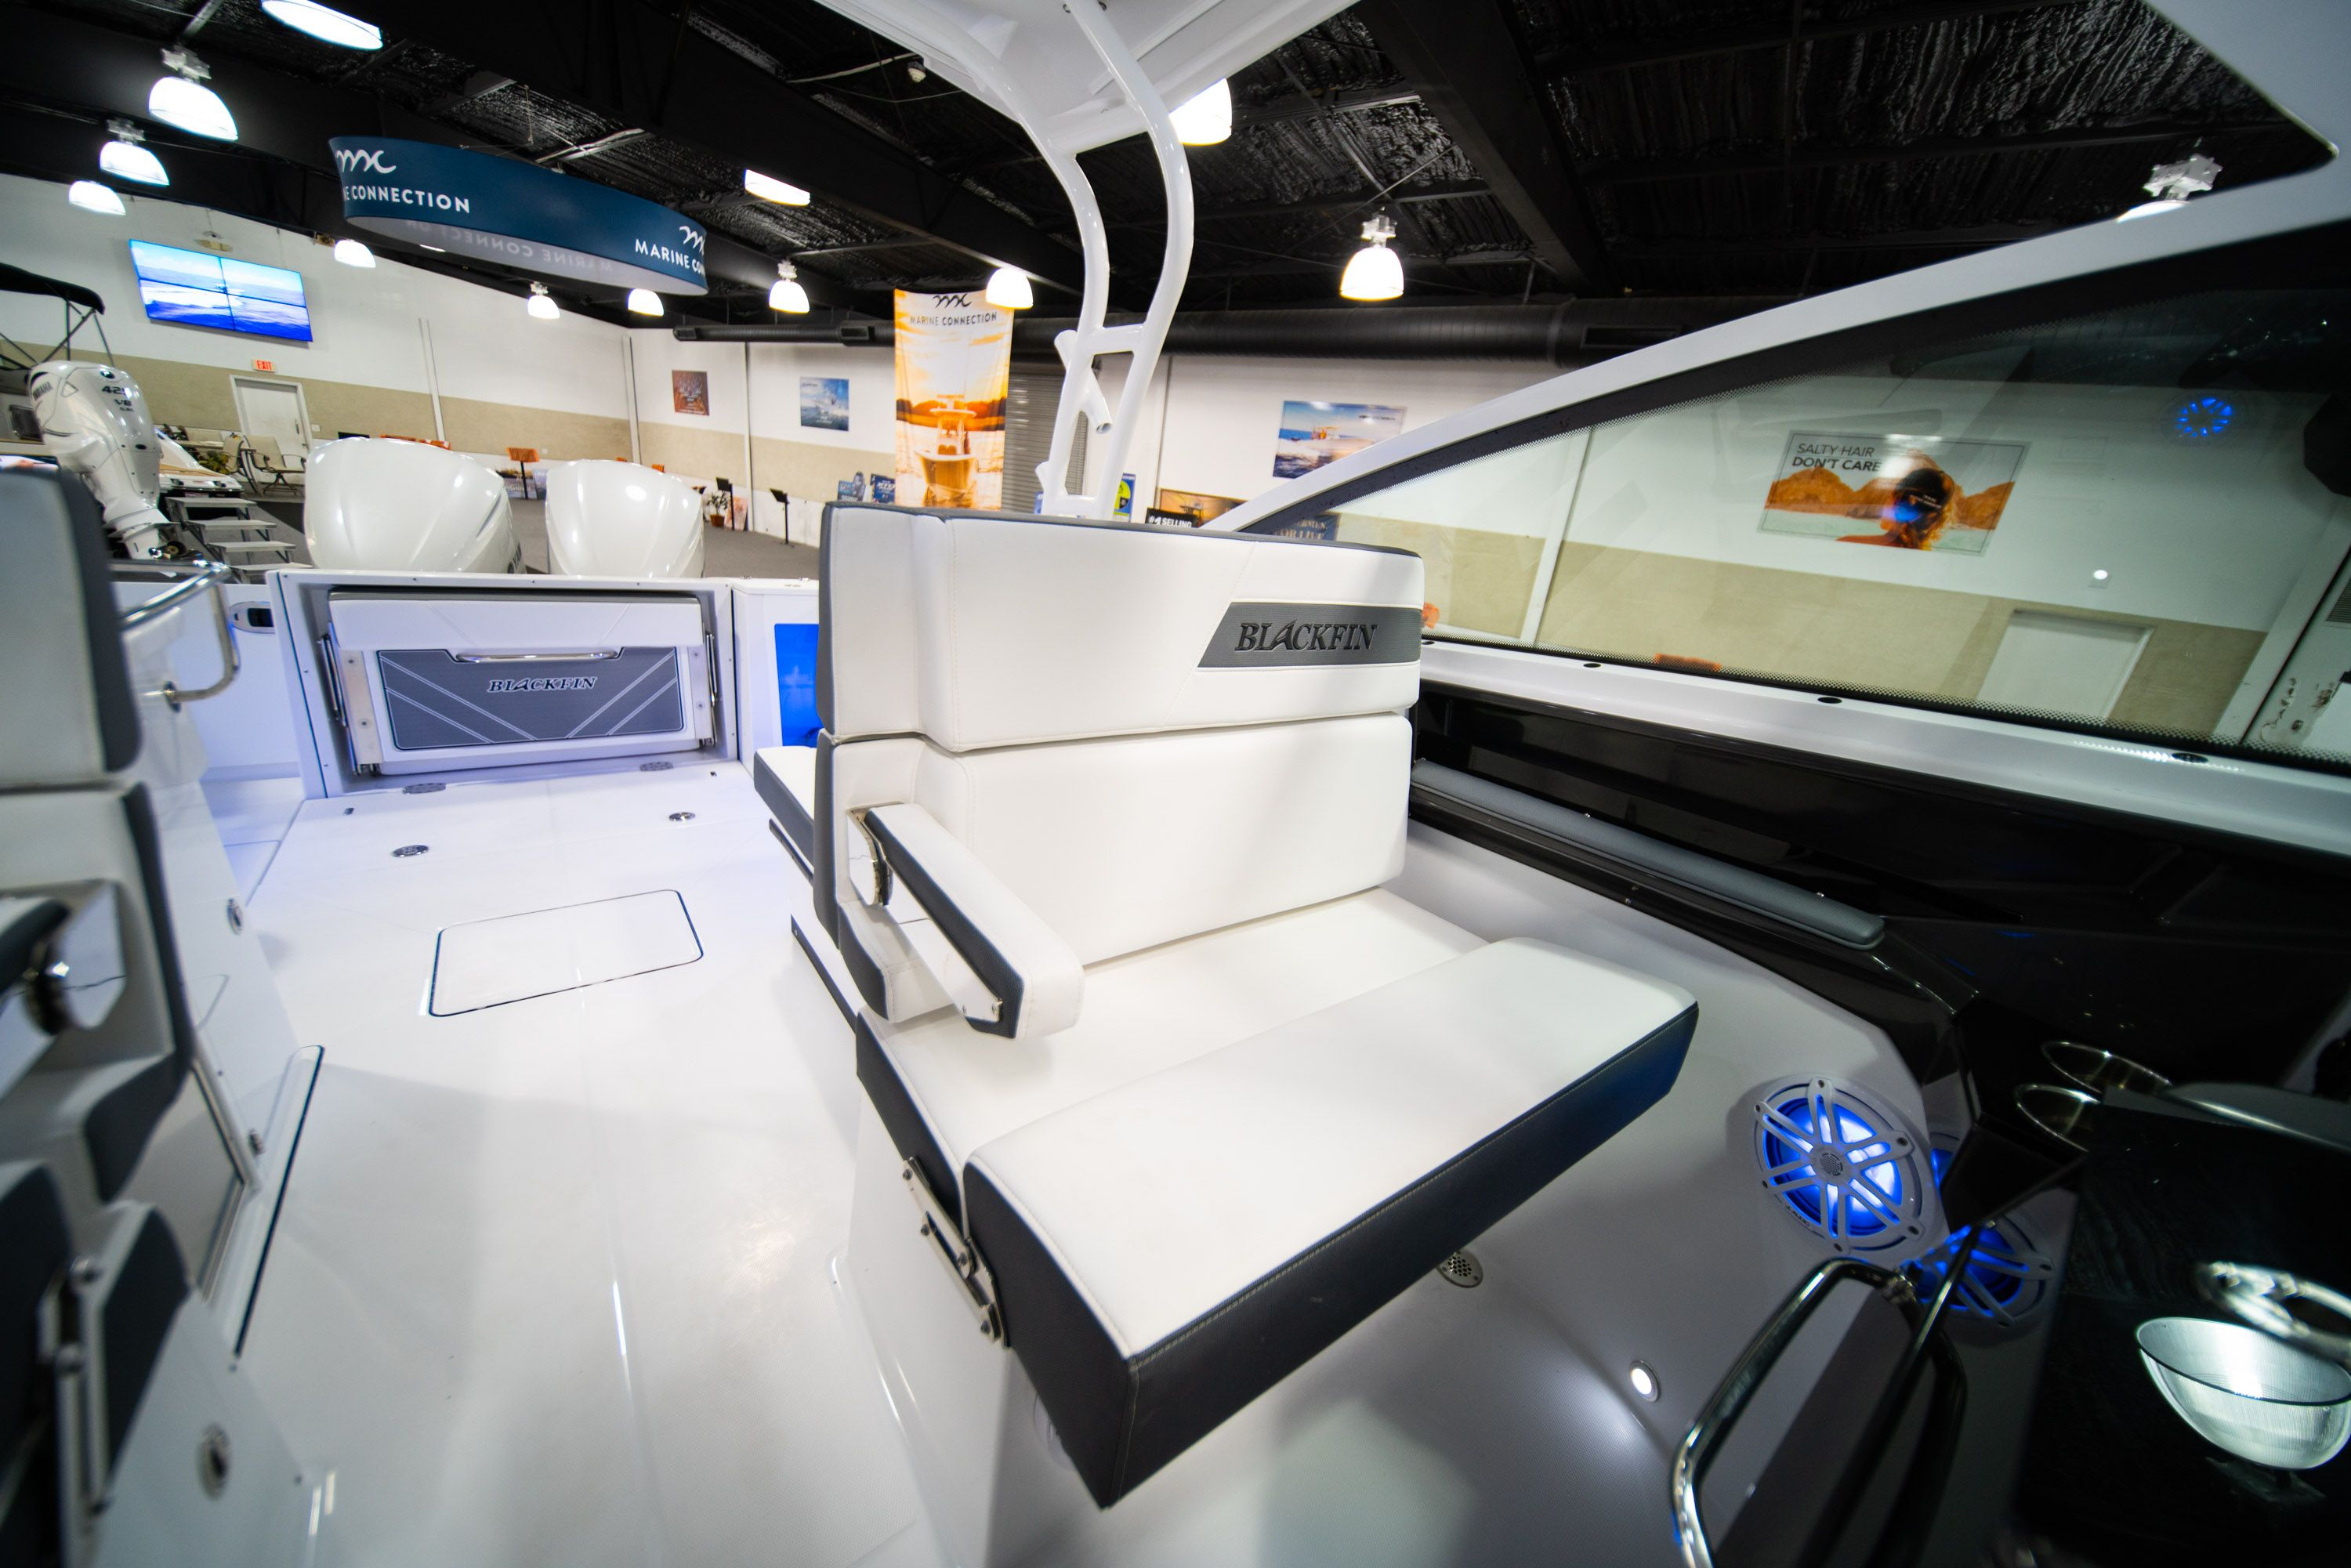 Thumbnail 33 for New 2020 Blackfin 272DC Dual Console boat for sale in West Palm Beach, FL